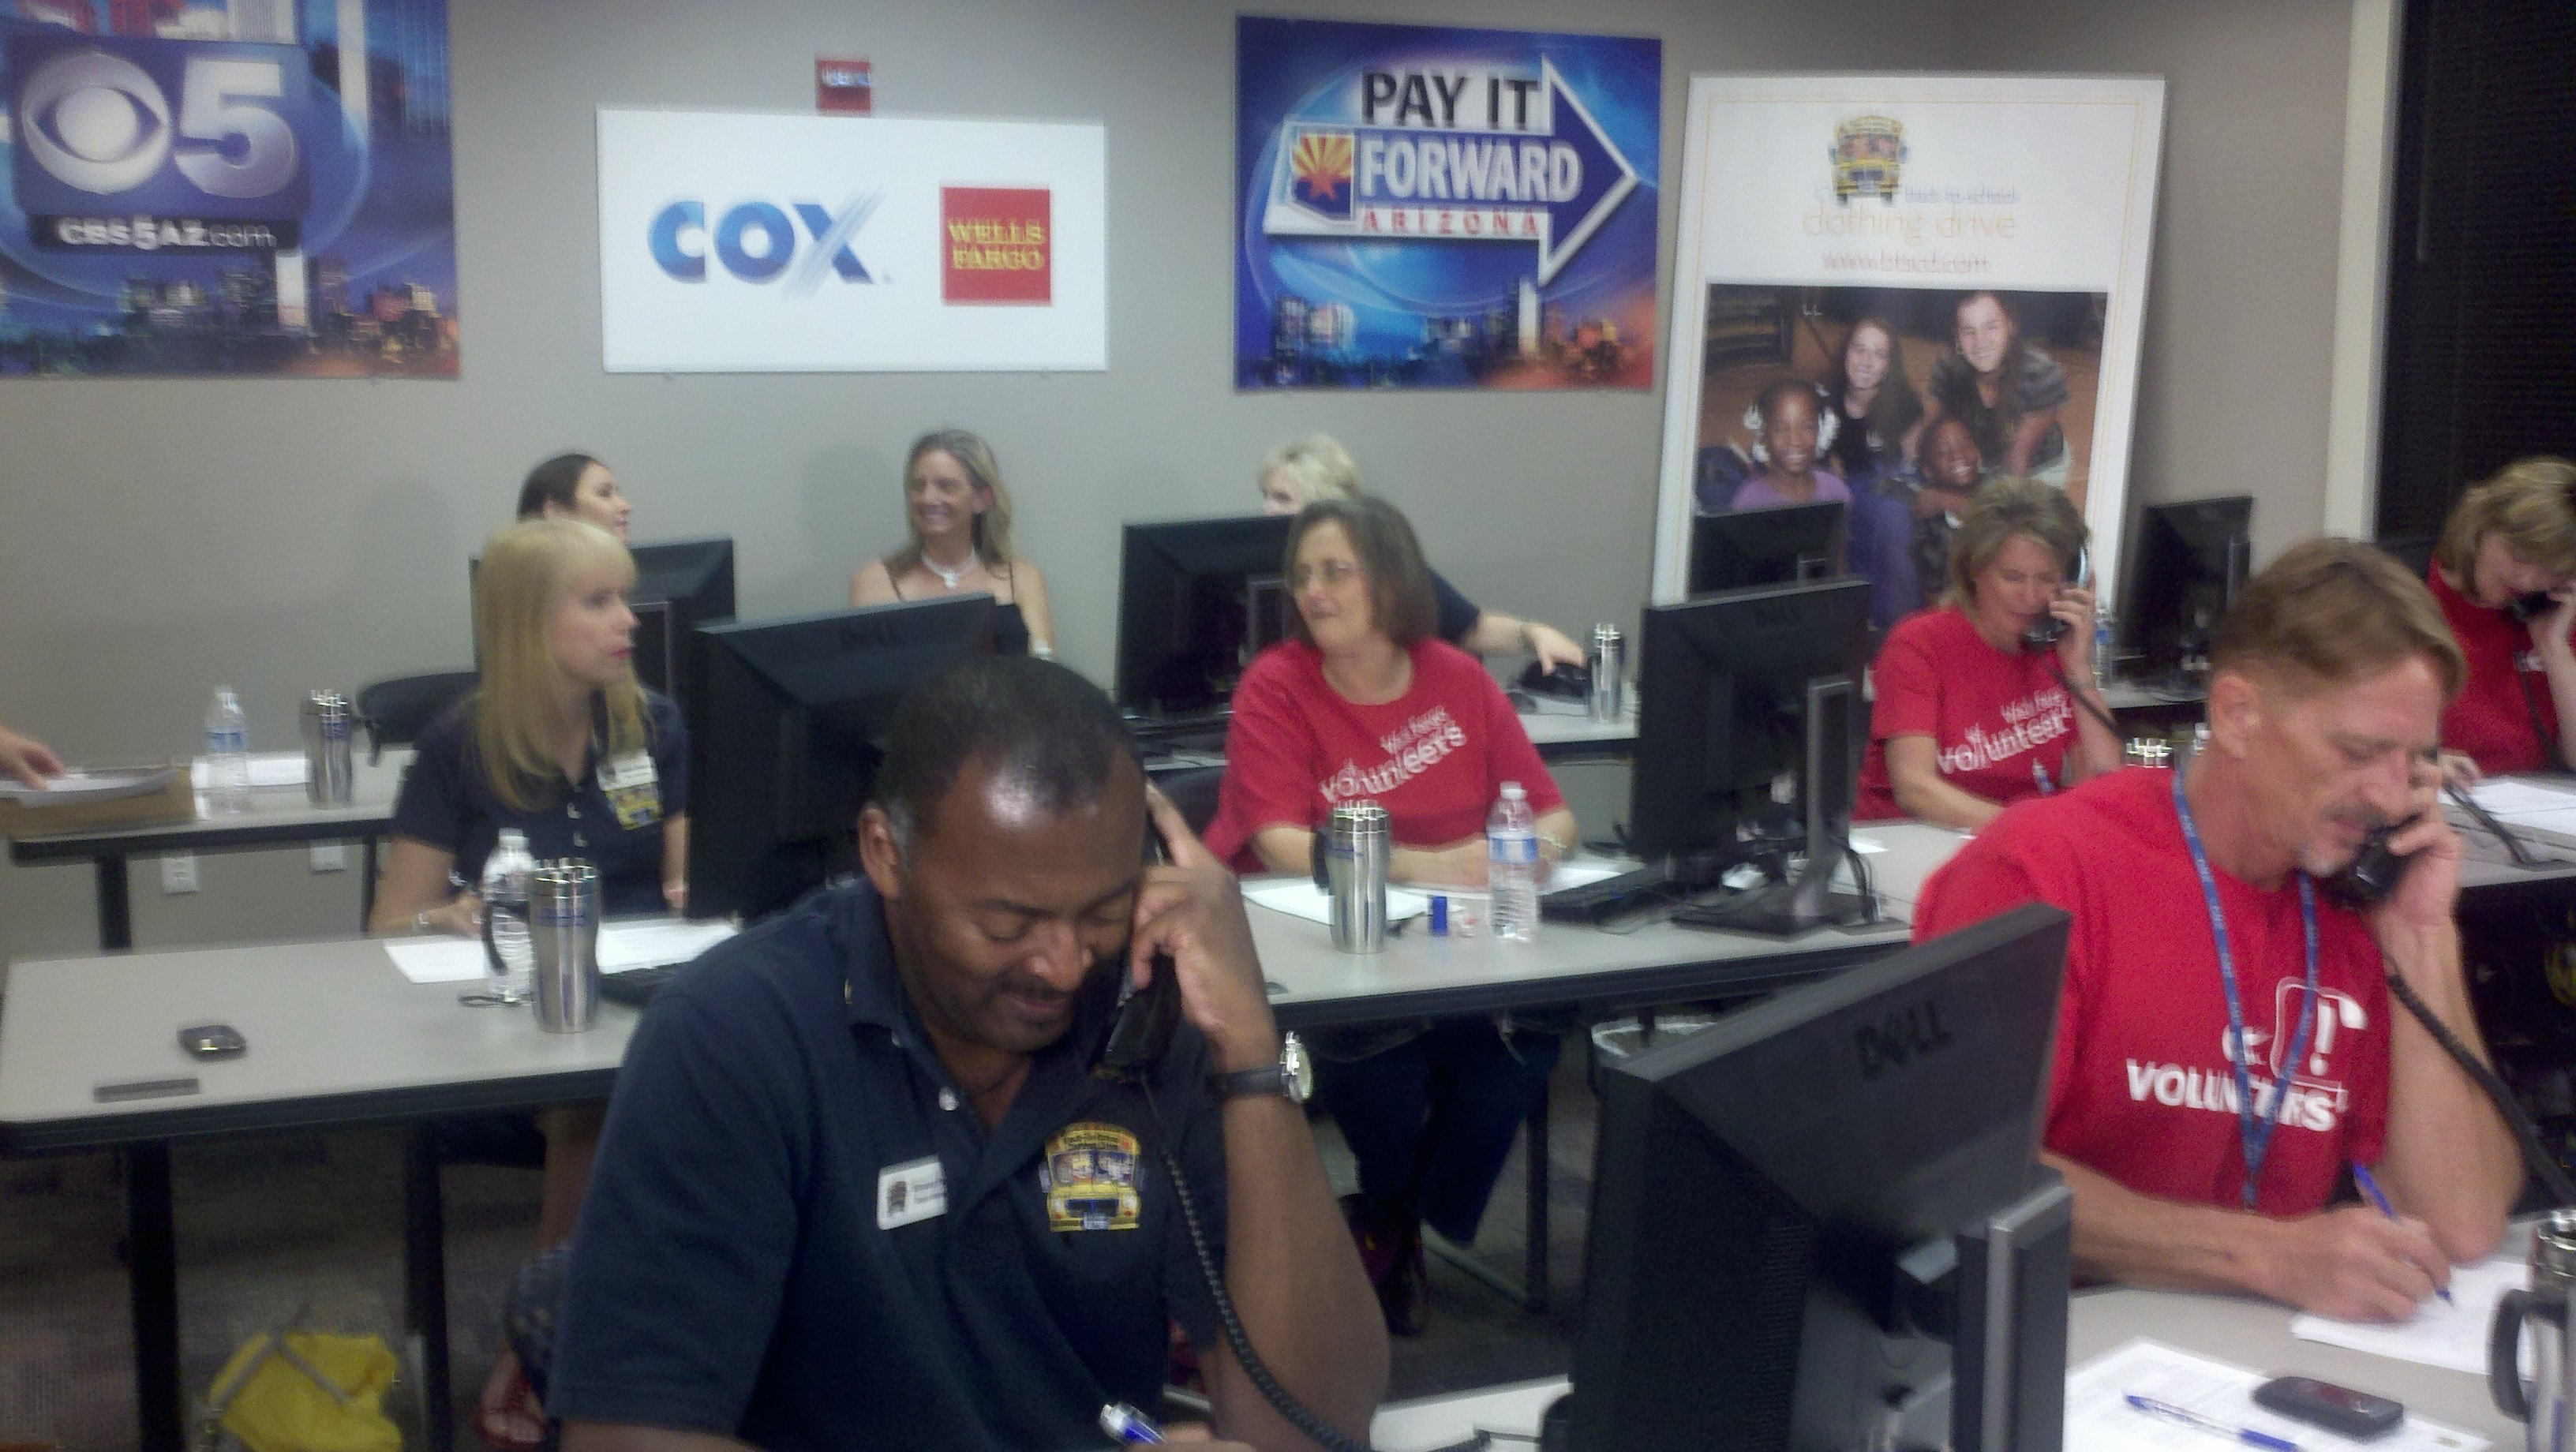 Volunteers answering phones on Friday.